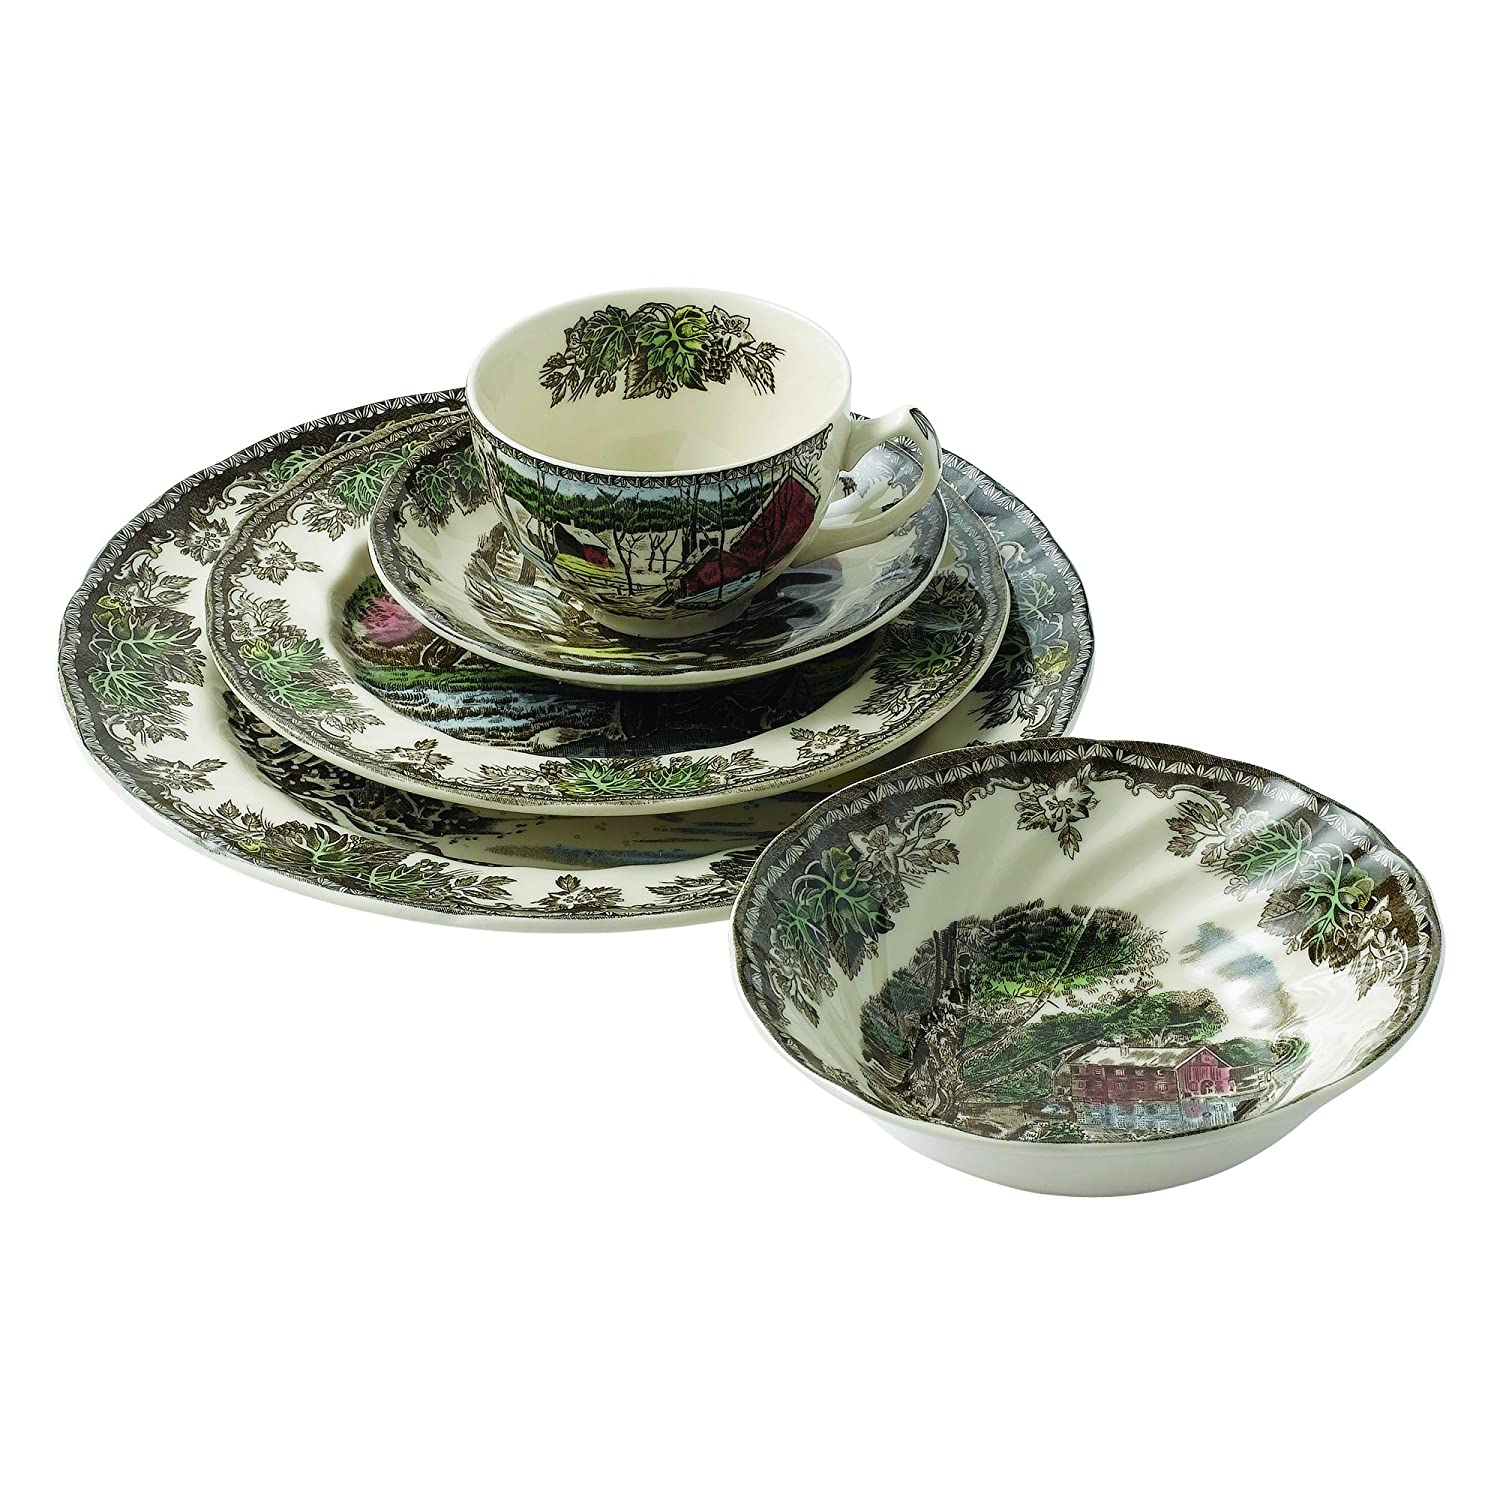 Amazon.com: Johnson Brothers Friendly Village 5 Piece Place Setting ...